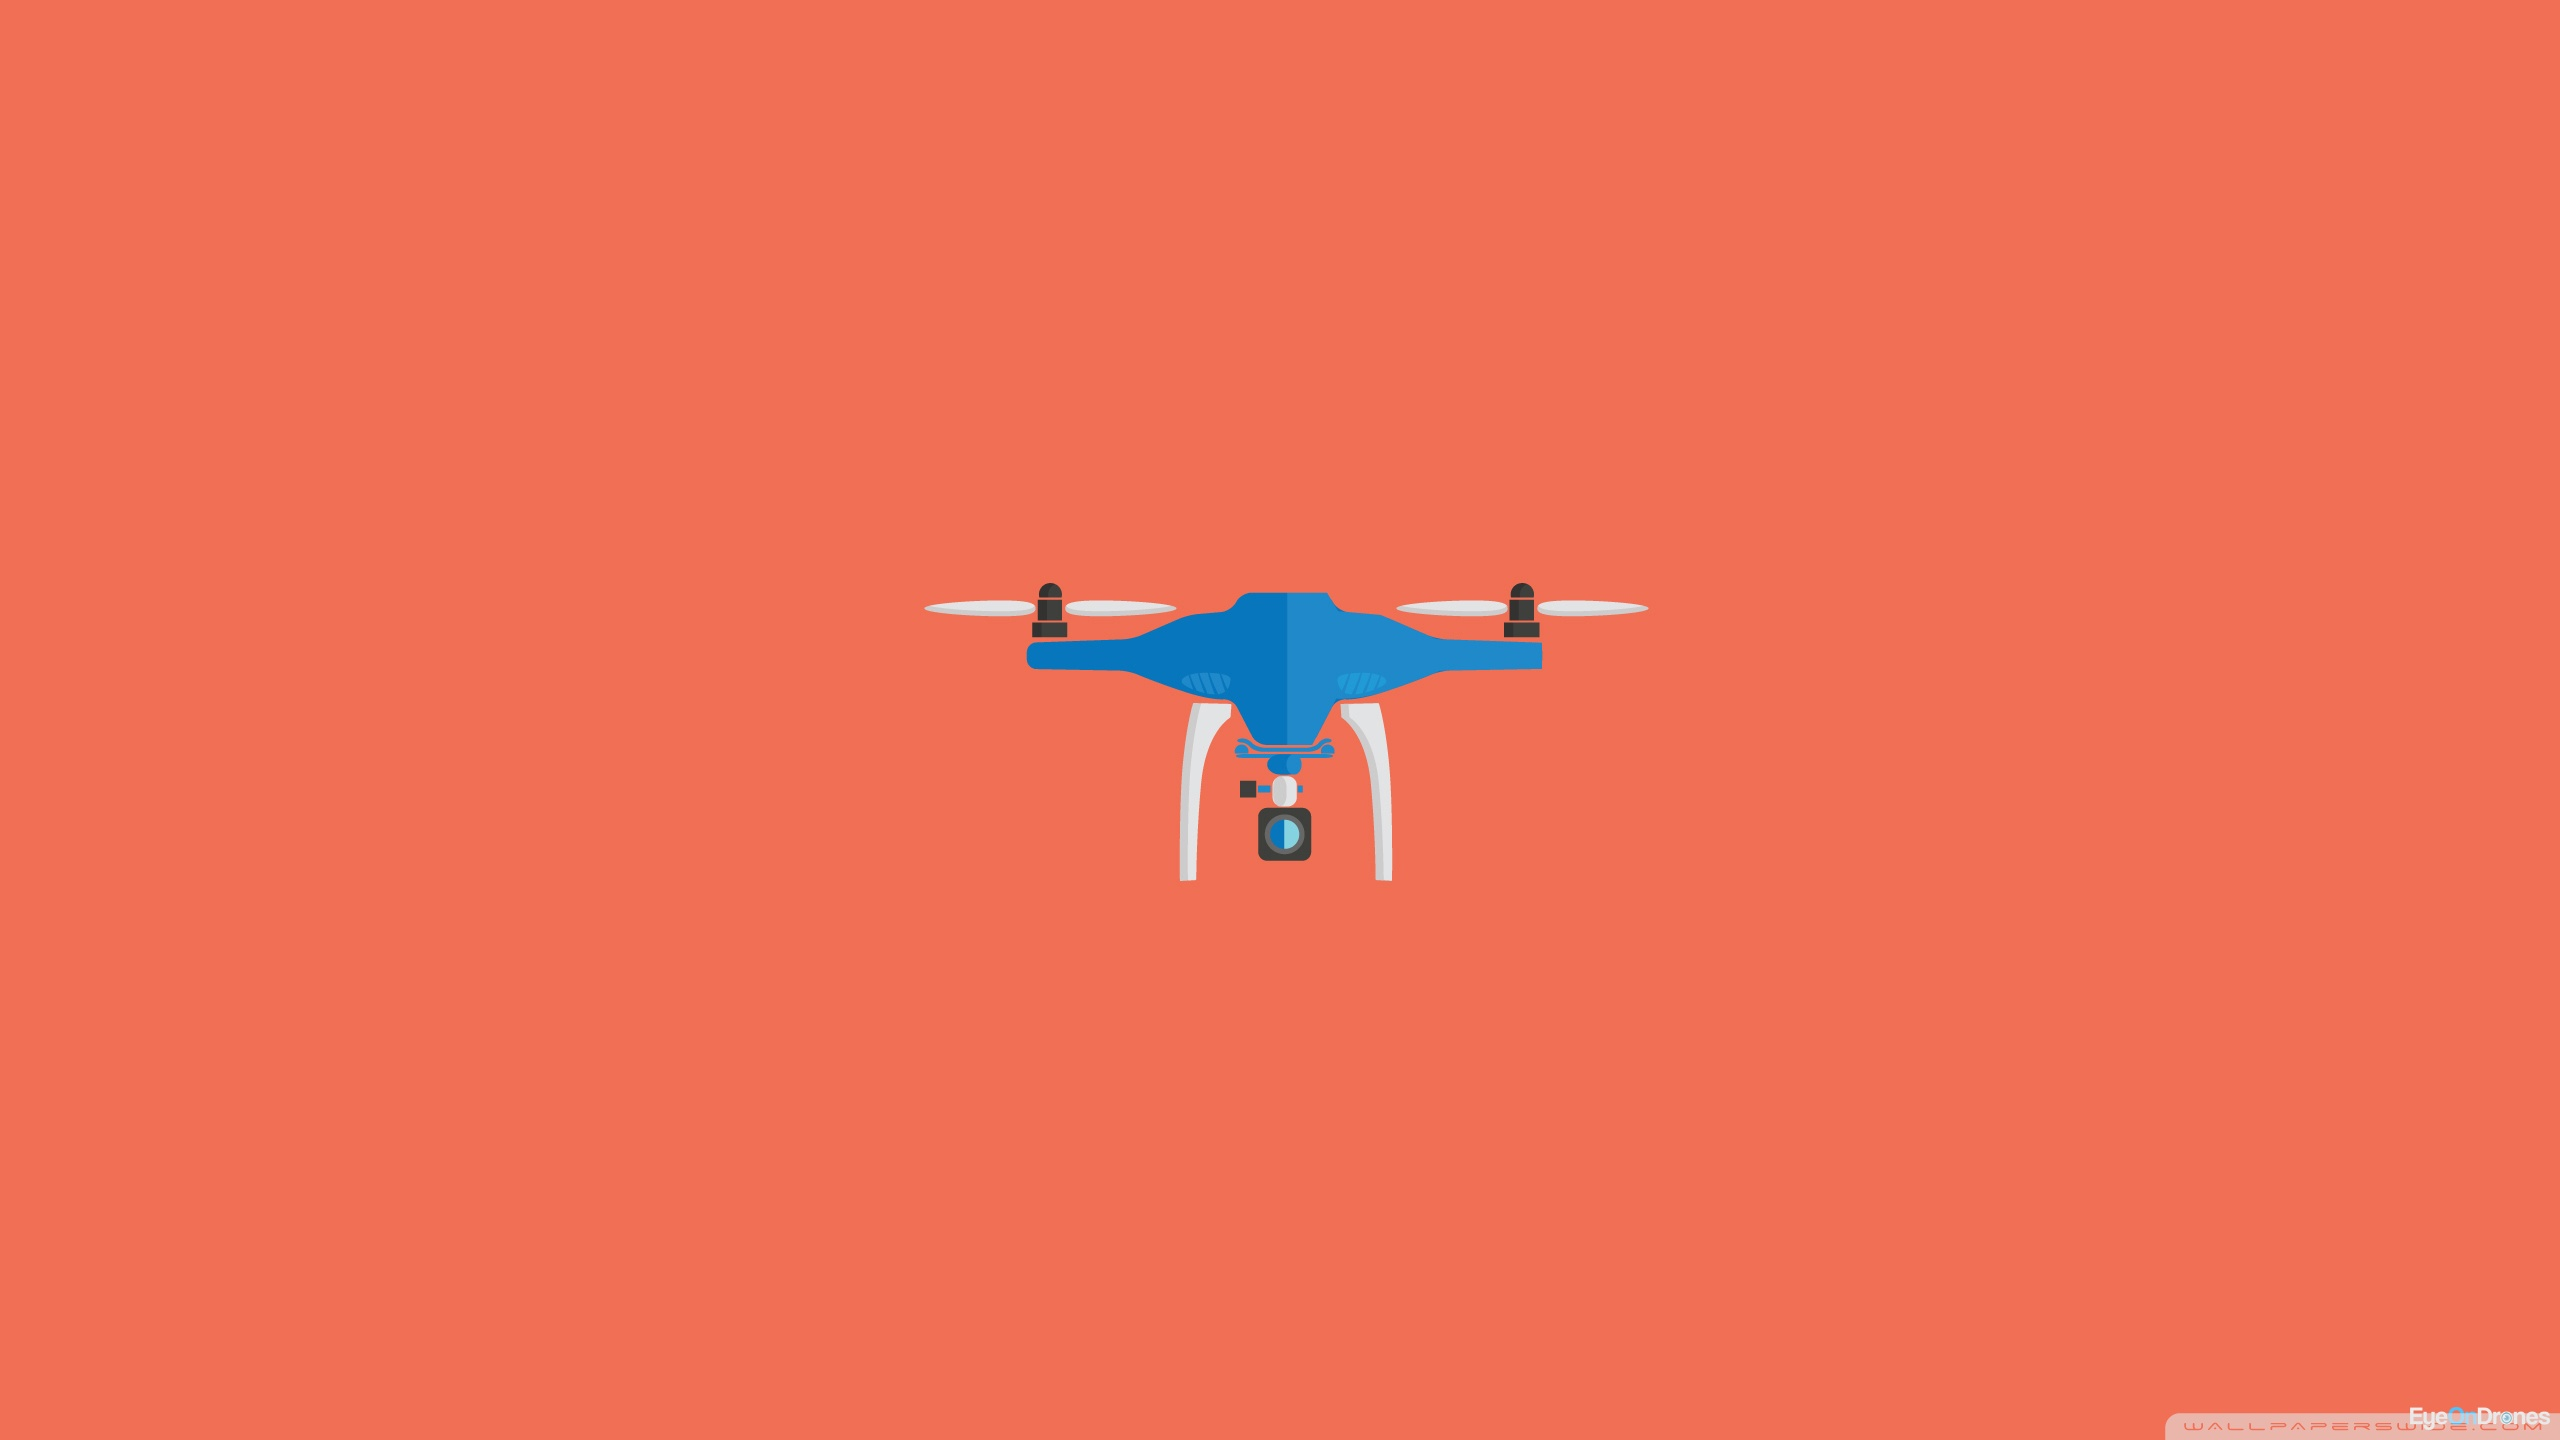 Aviation Wallpaper Iphone X Drone Minimal Artwork Orange 4k Hd Desktop Wallpaper For